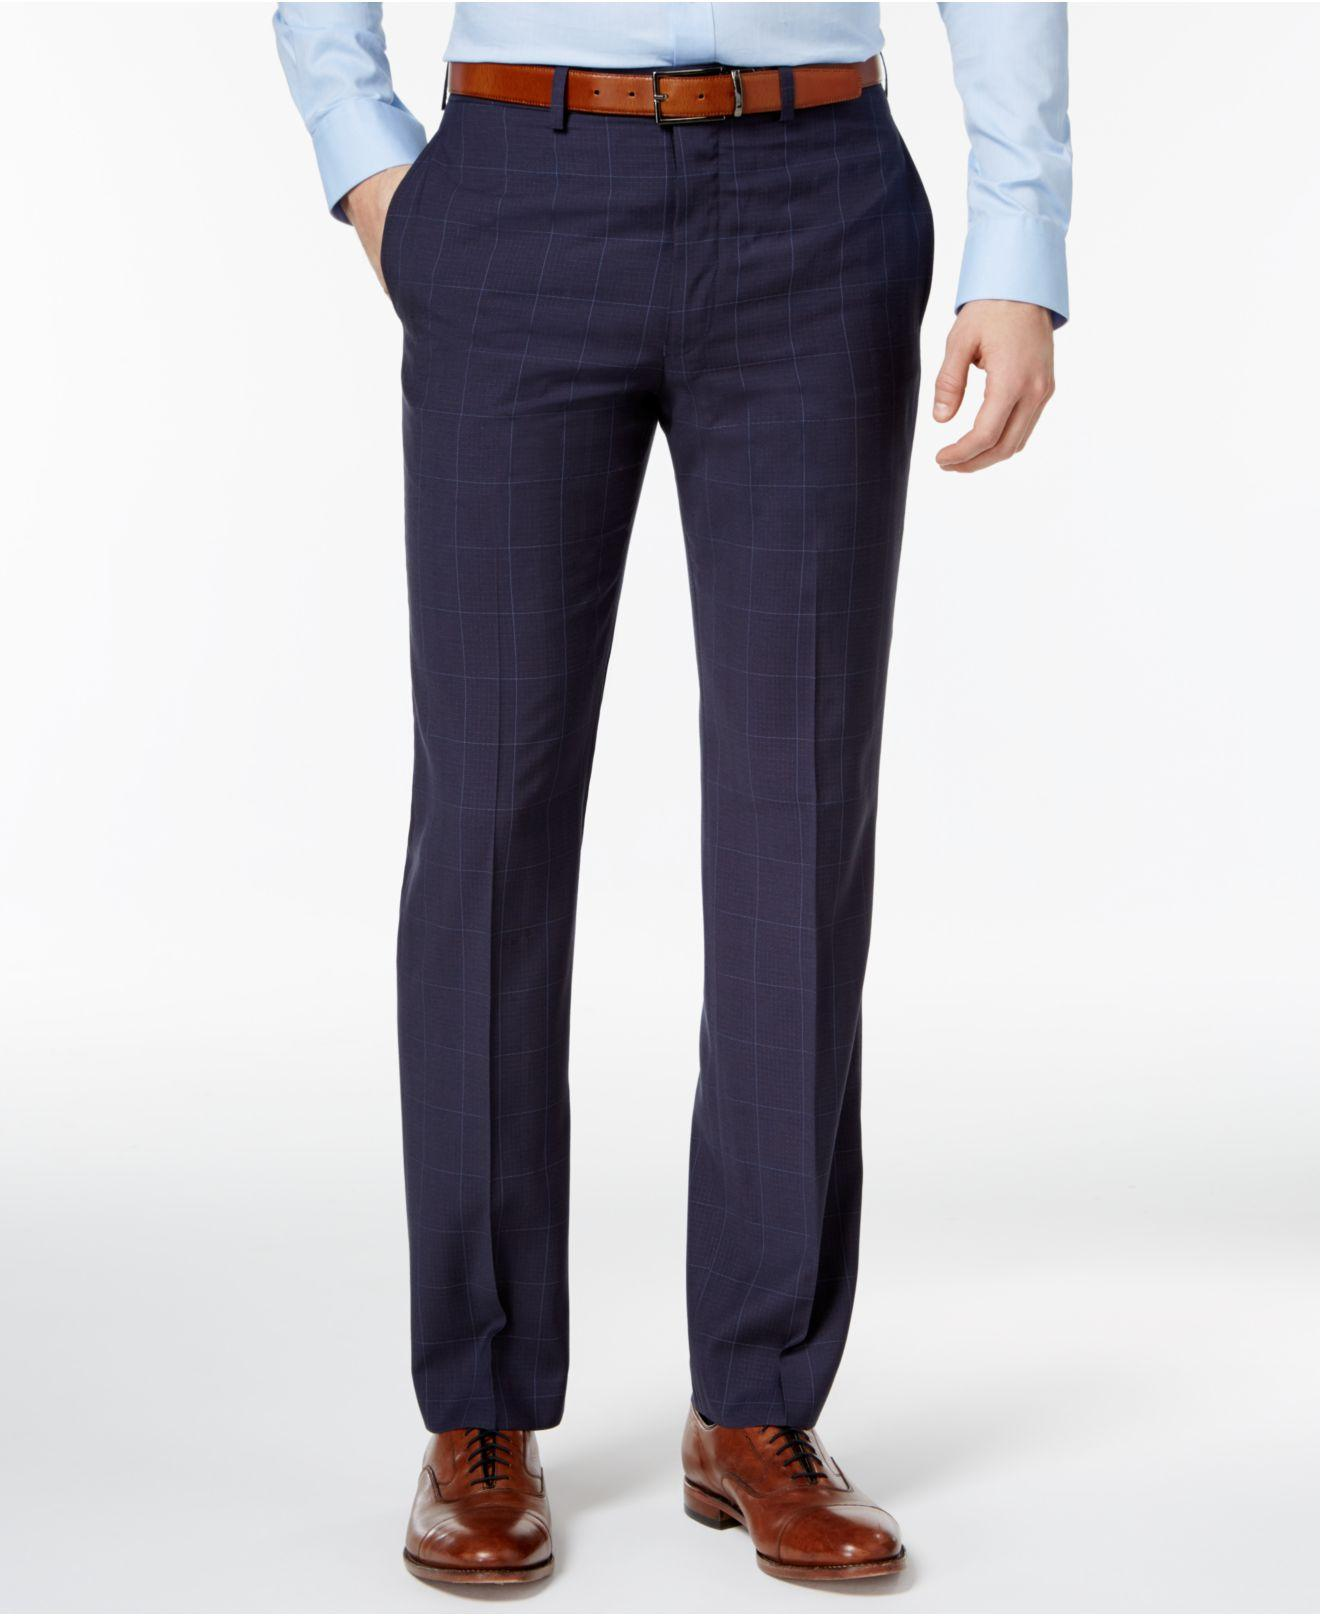 sleek and comfortable, these navy dress pants feature slight stretch, an extended tab closure, multiple pockets and versatile formal styling.